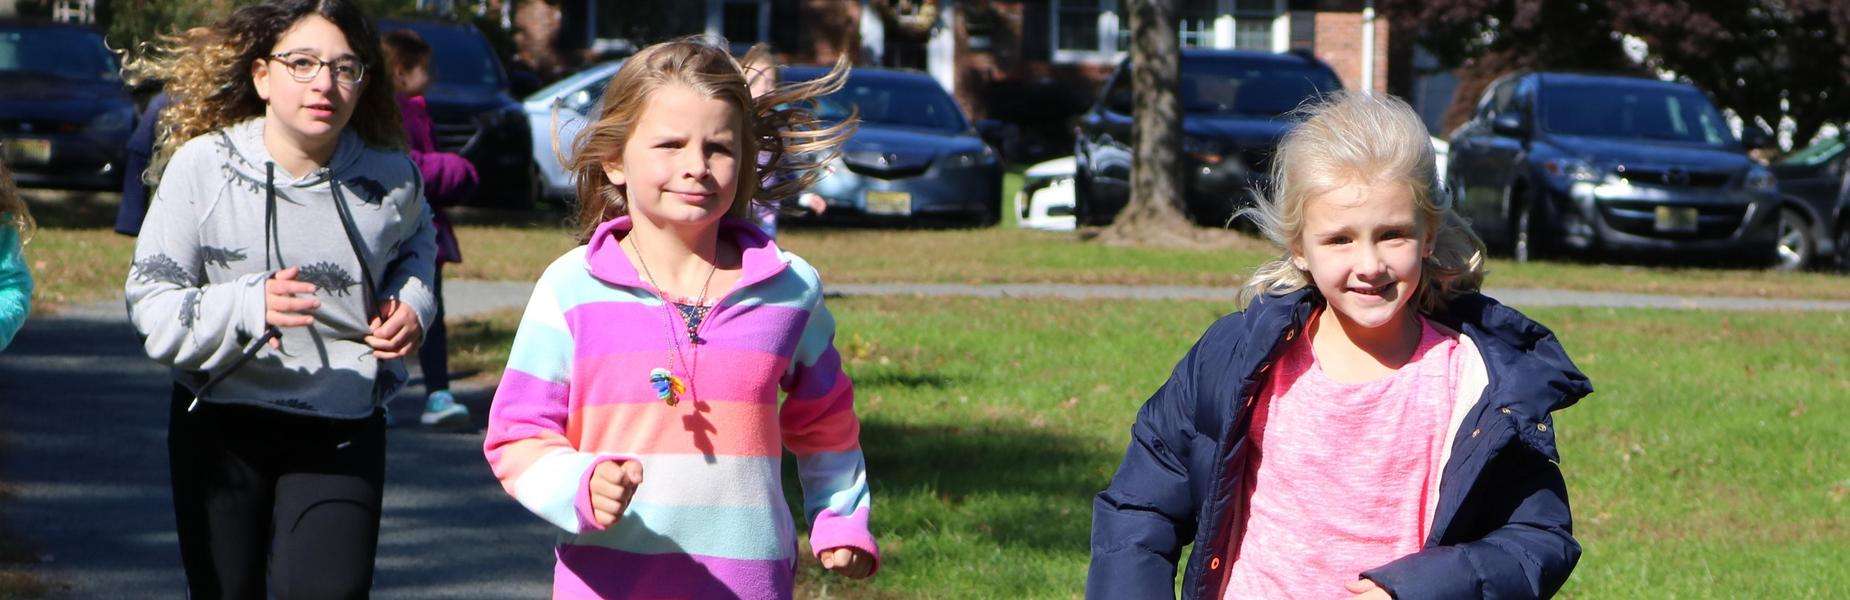 Washington School students run laps as part of the Recess Runners' Club.